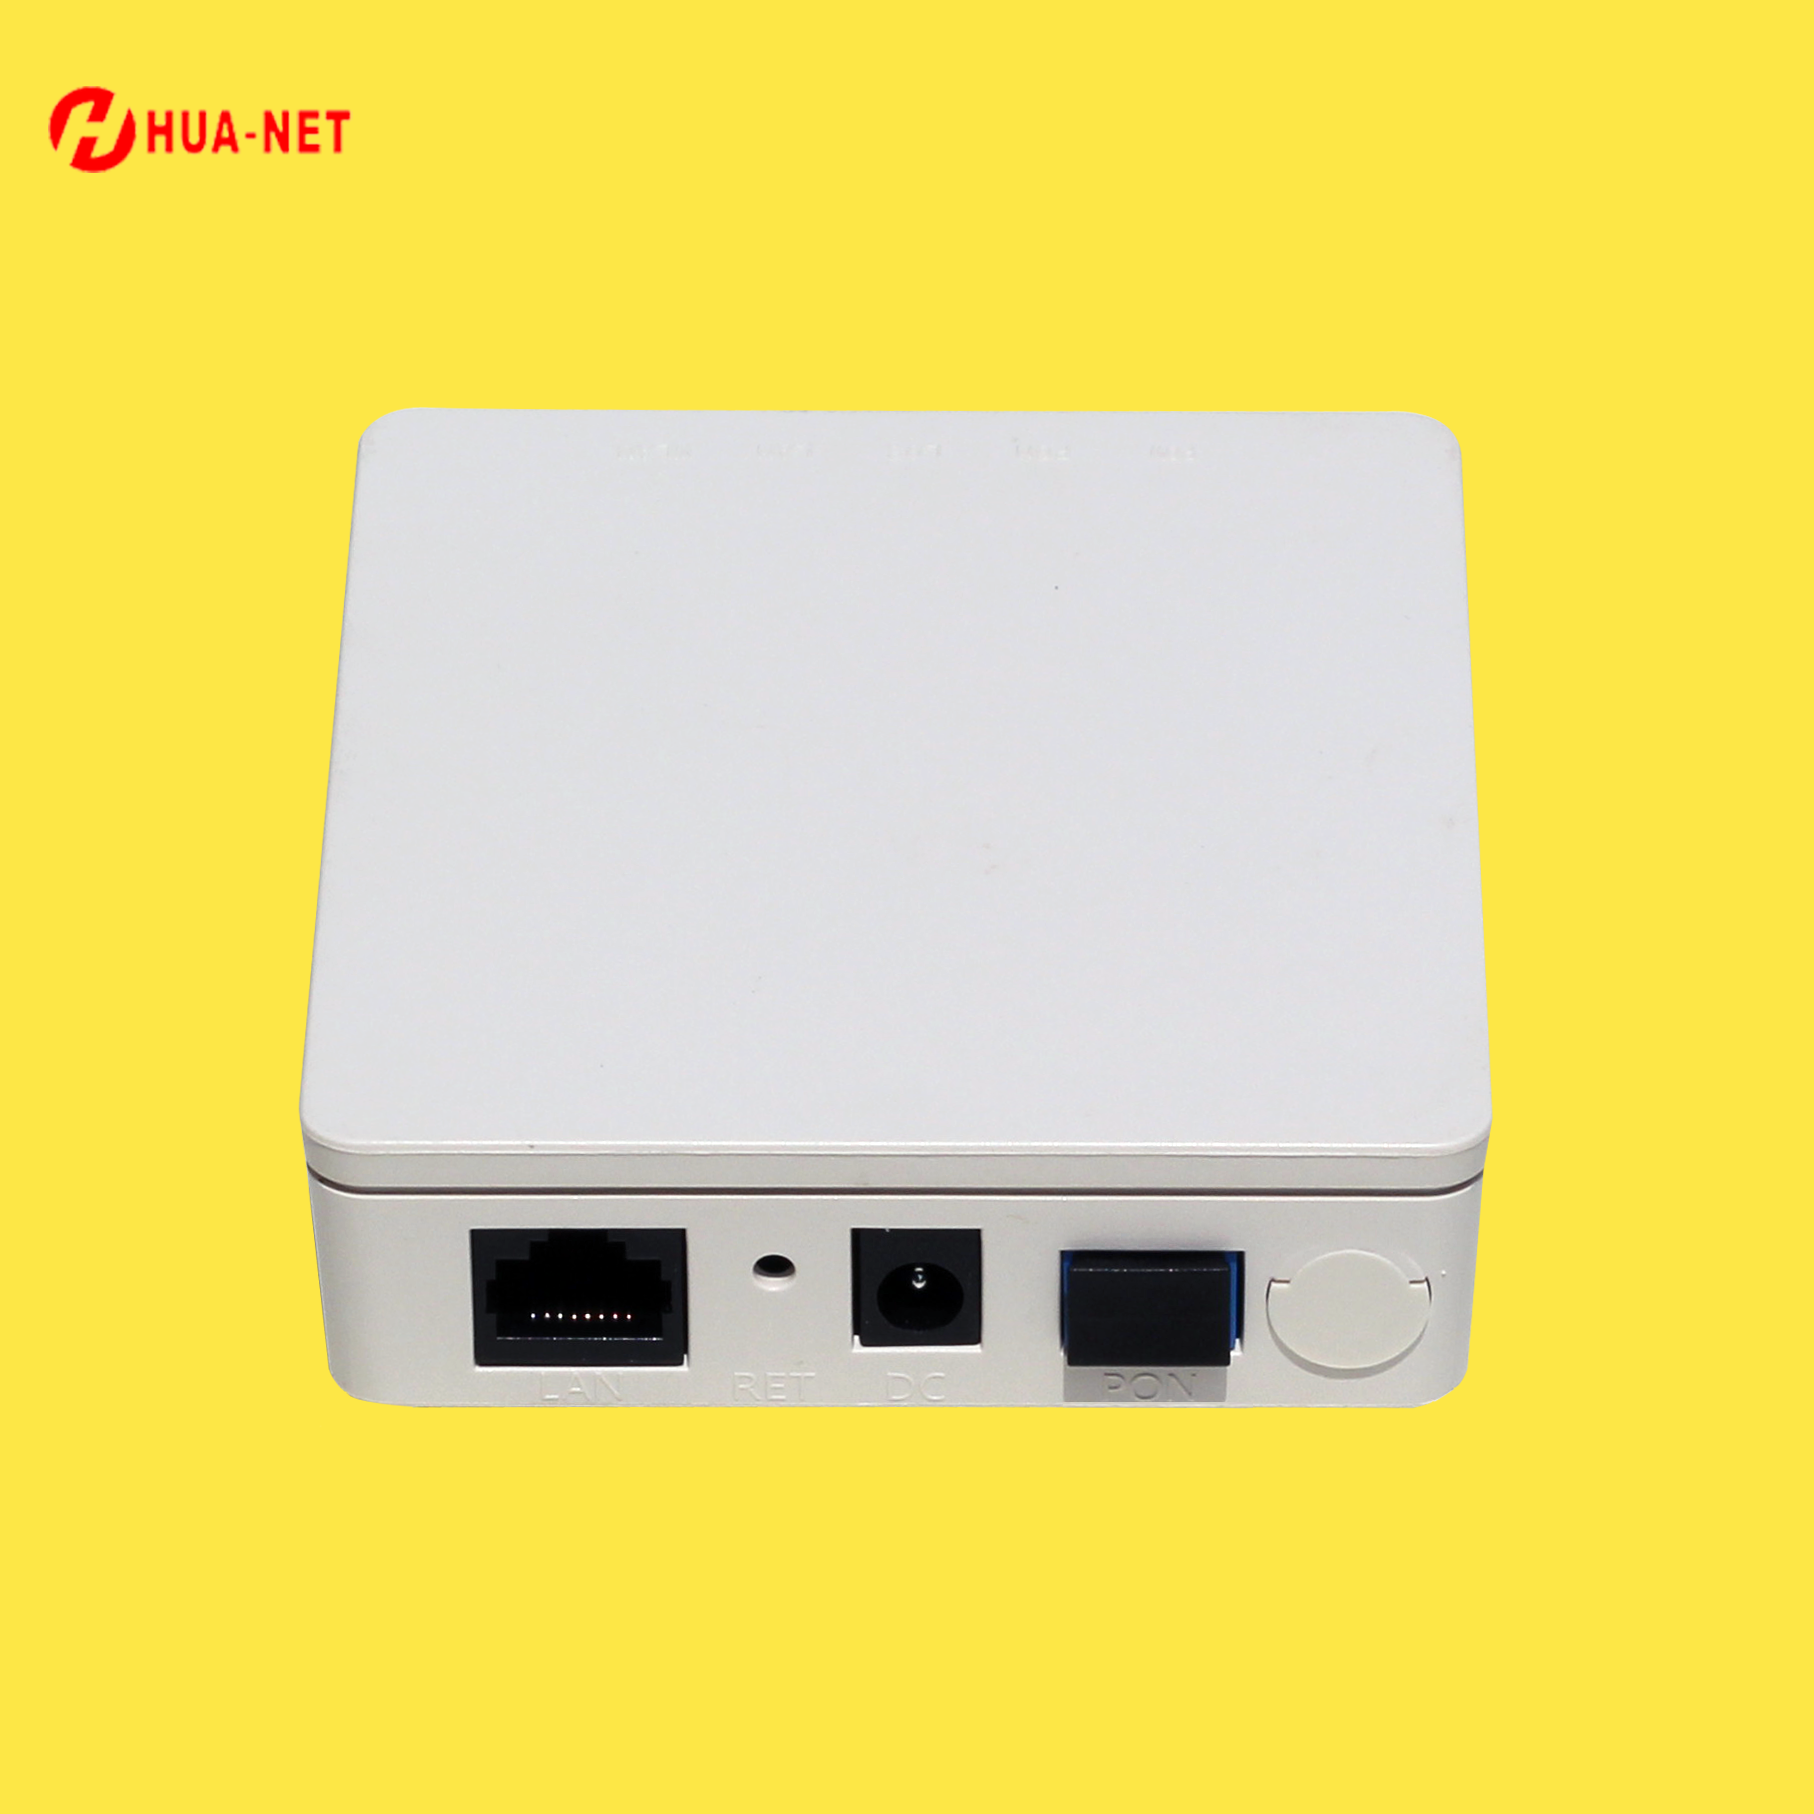 ZTE/MTK/Hi Chipset 1GE GPON ONU optical network terminal device